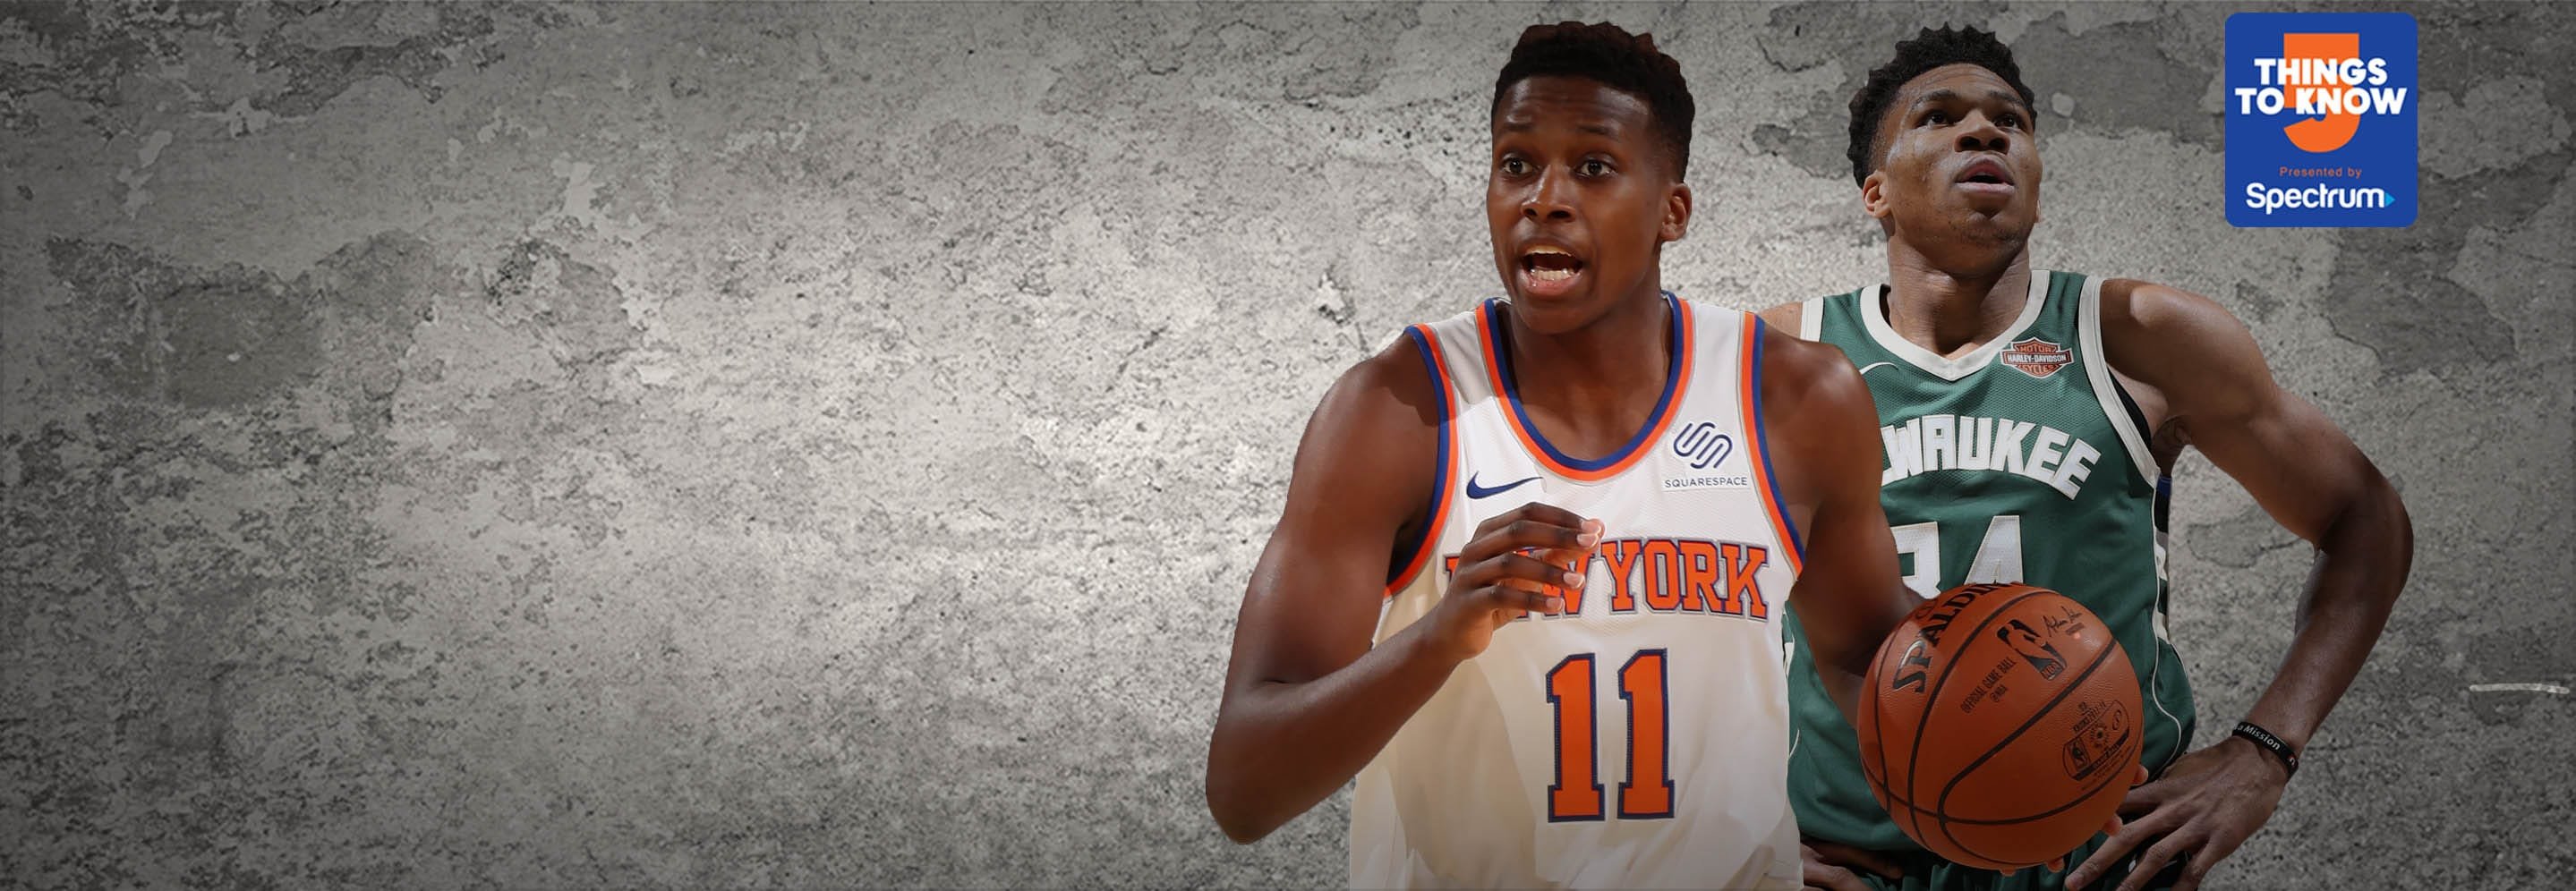 Knicks Face Off vs the Bucks Looking for Back-to-Back Wins at Home